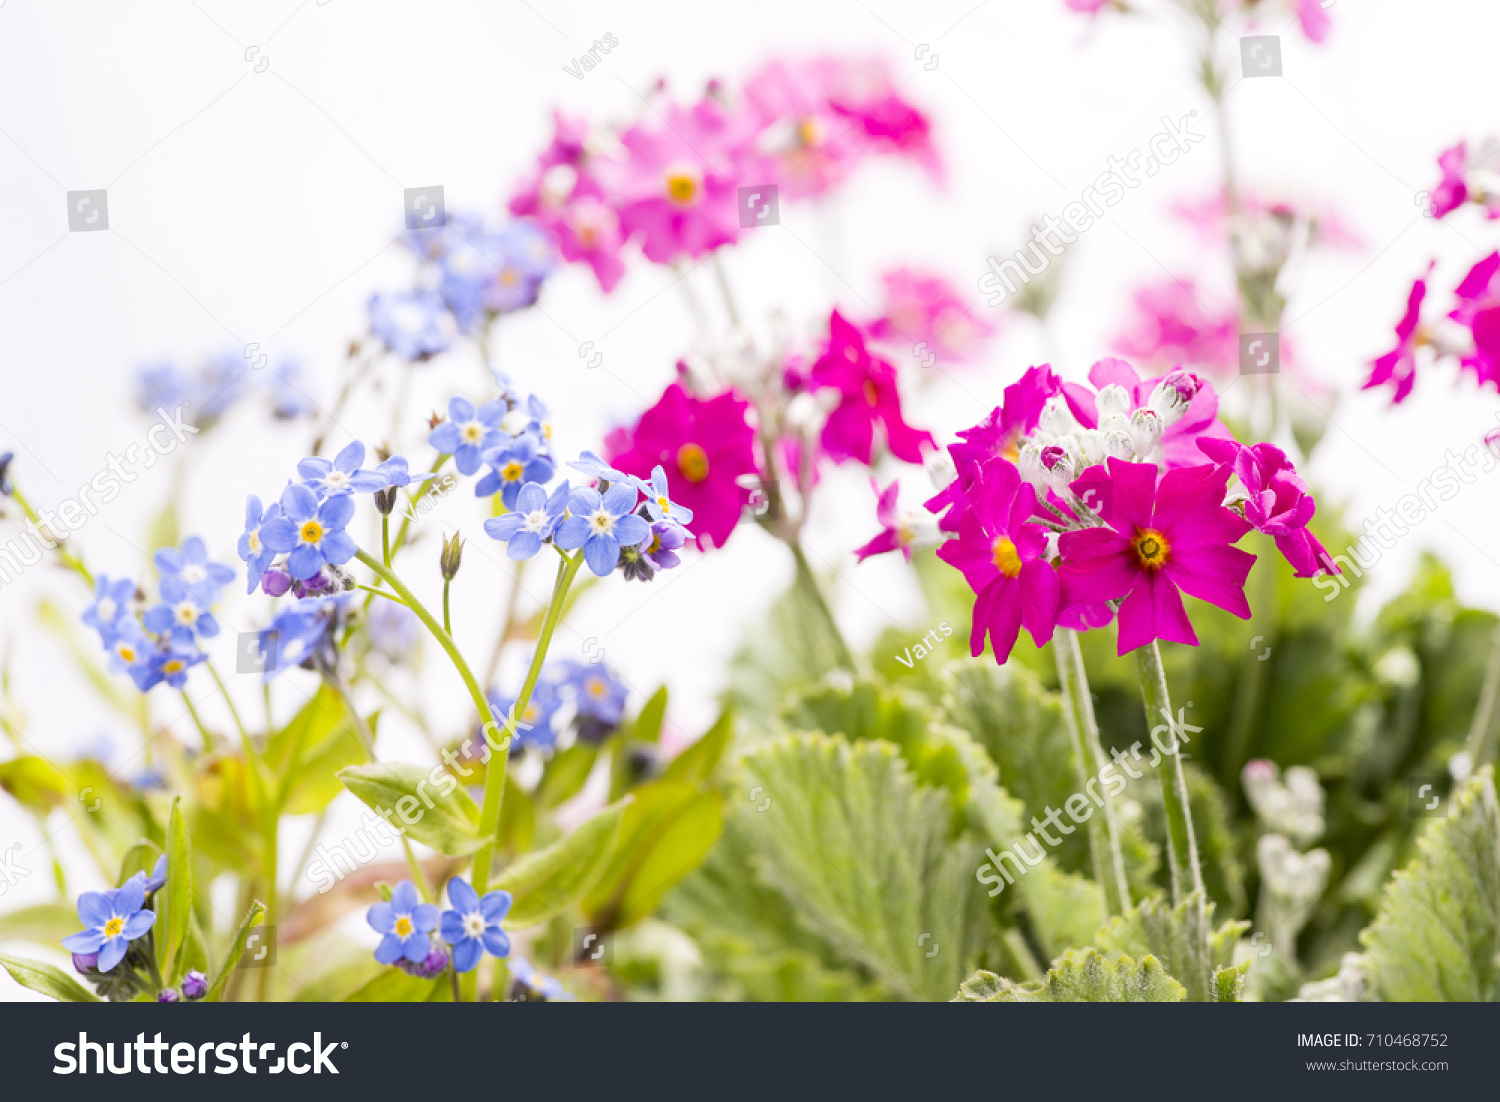 Blue Forgetmenot Flowers Pink Primula Flowers Stock Photo Royalty